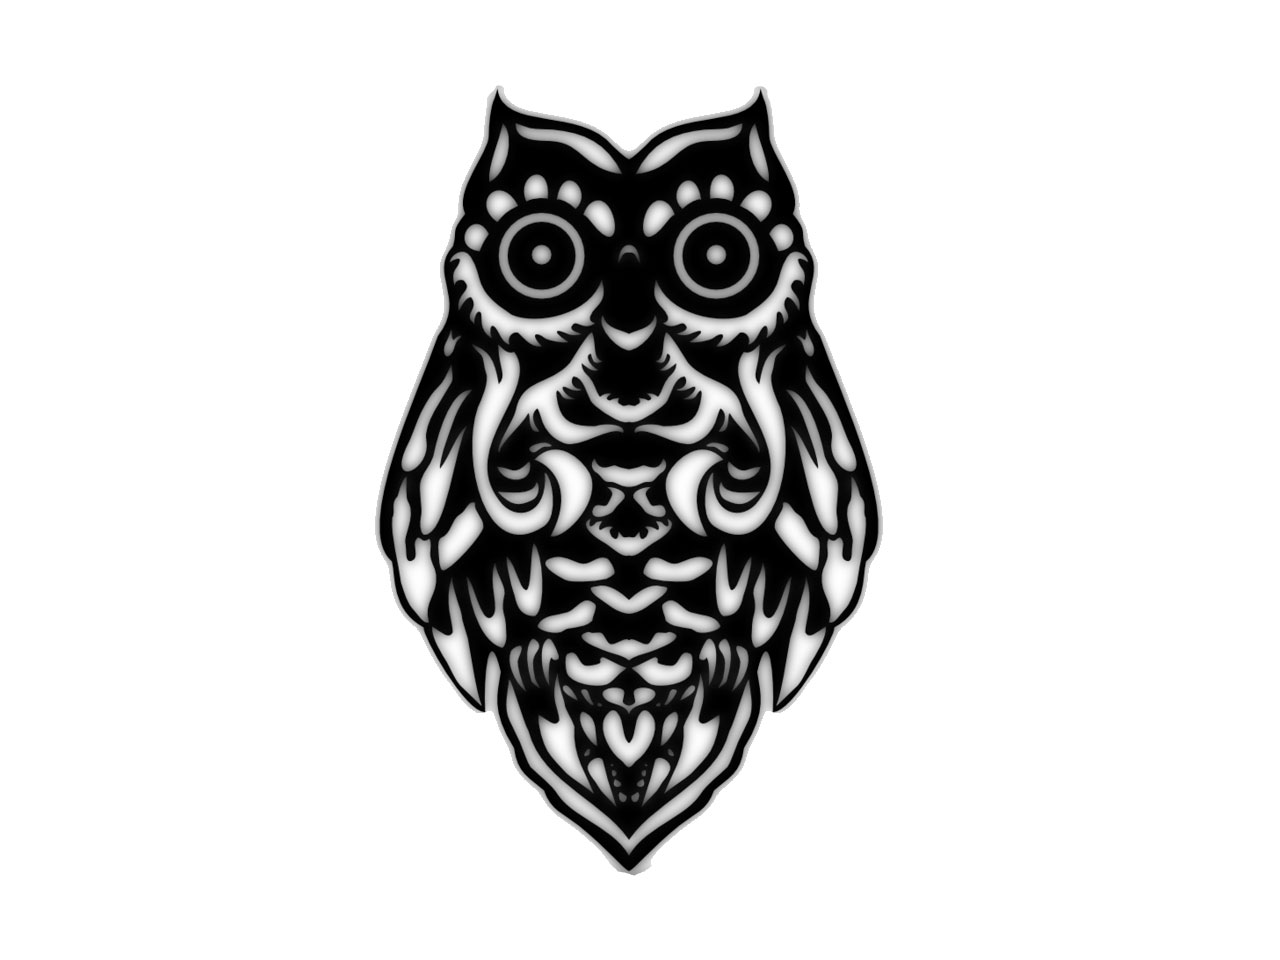 Owl tattoos designs ideas and meaning tattoos for you for Tribal owl tattoo